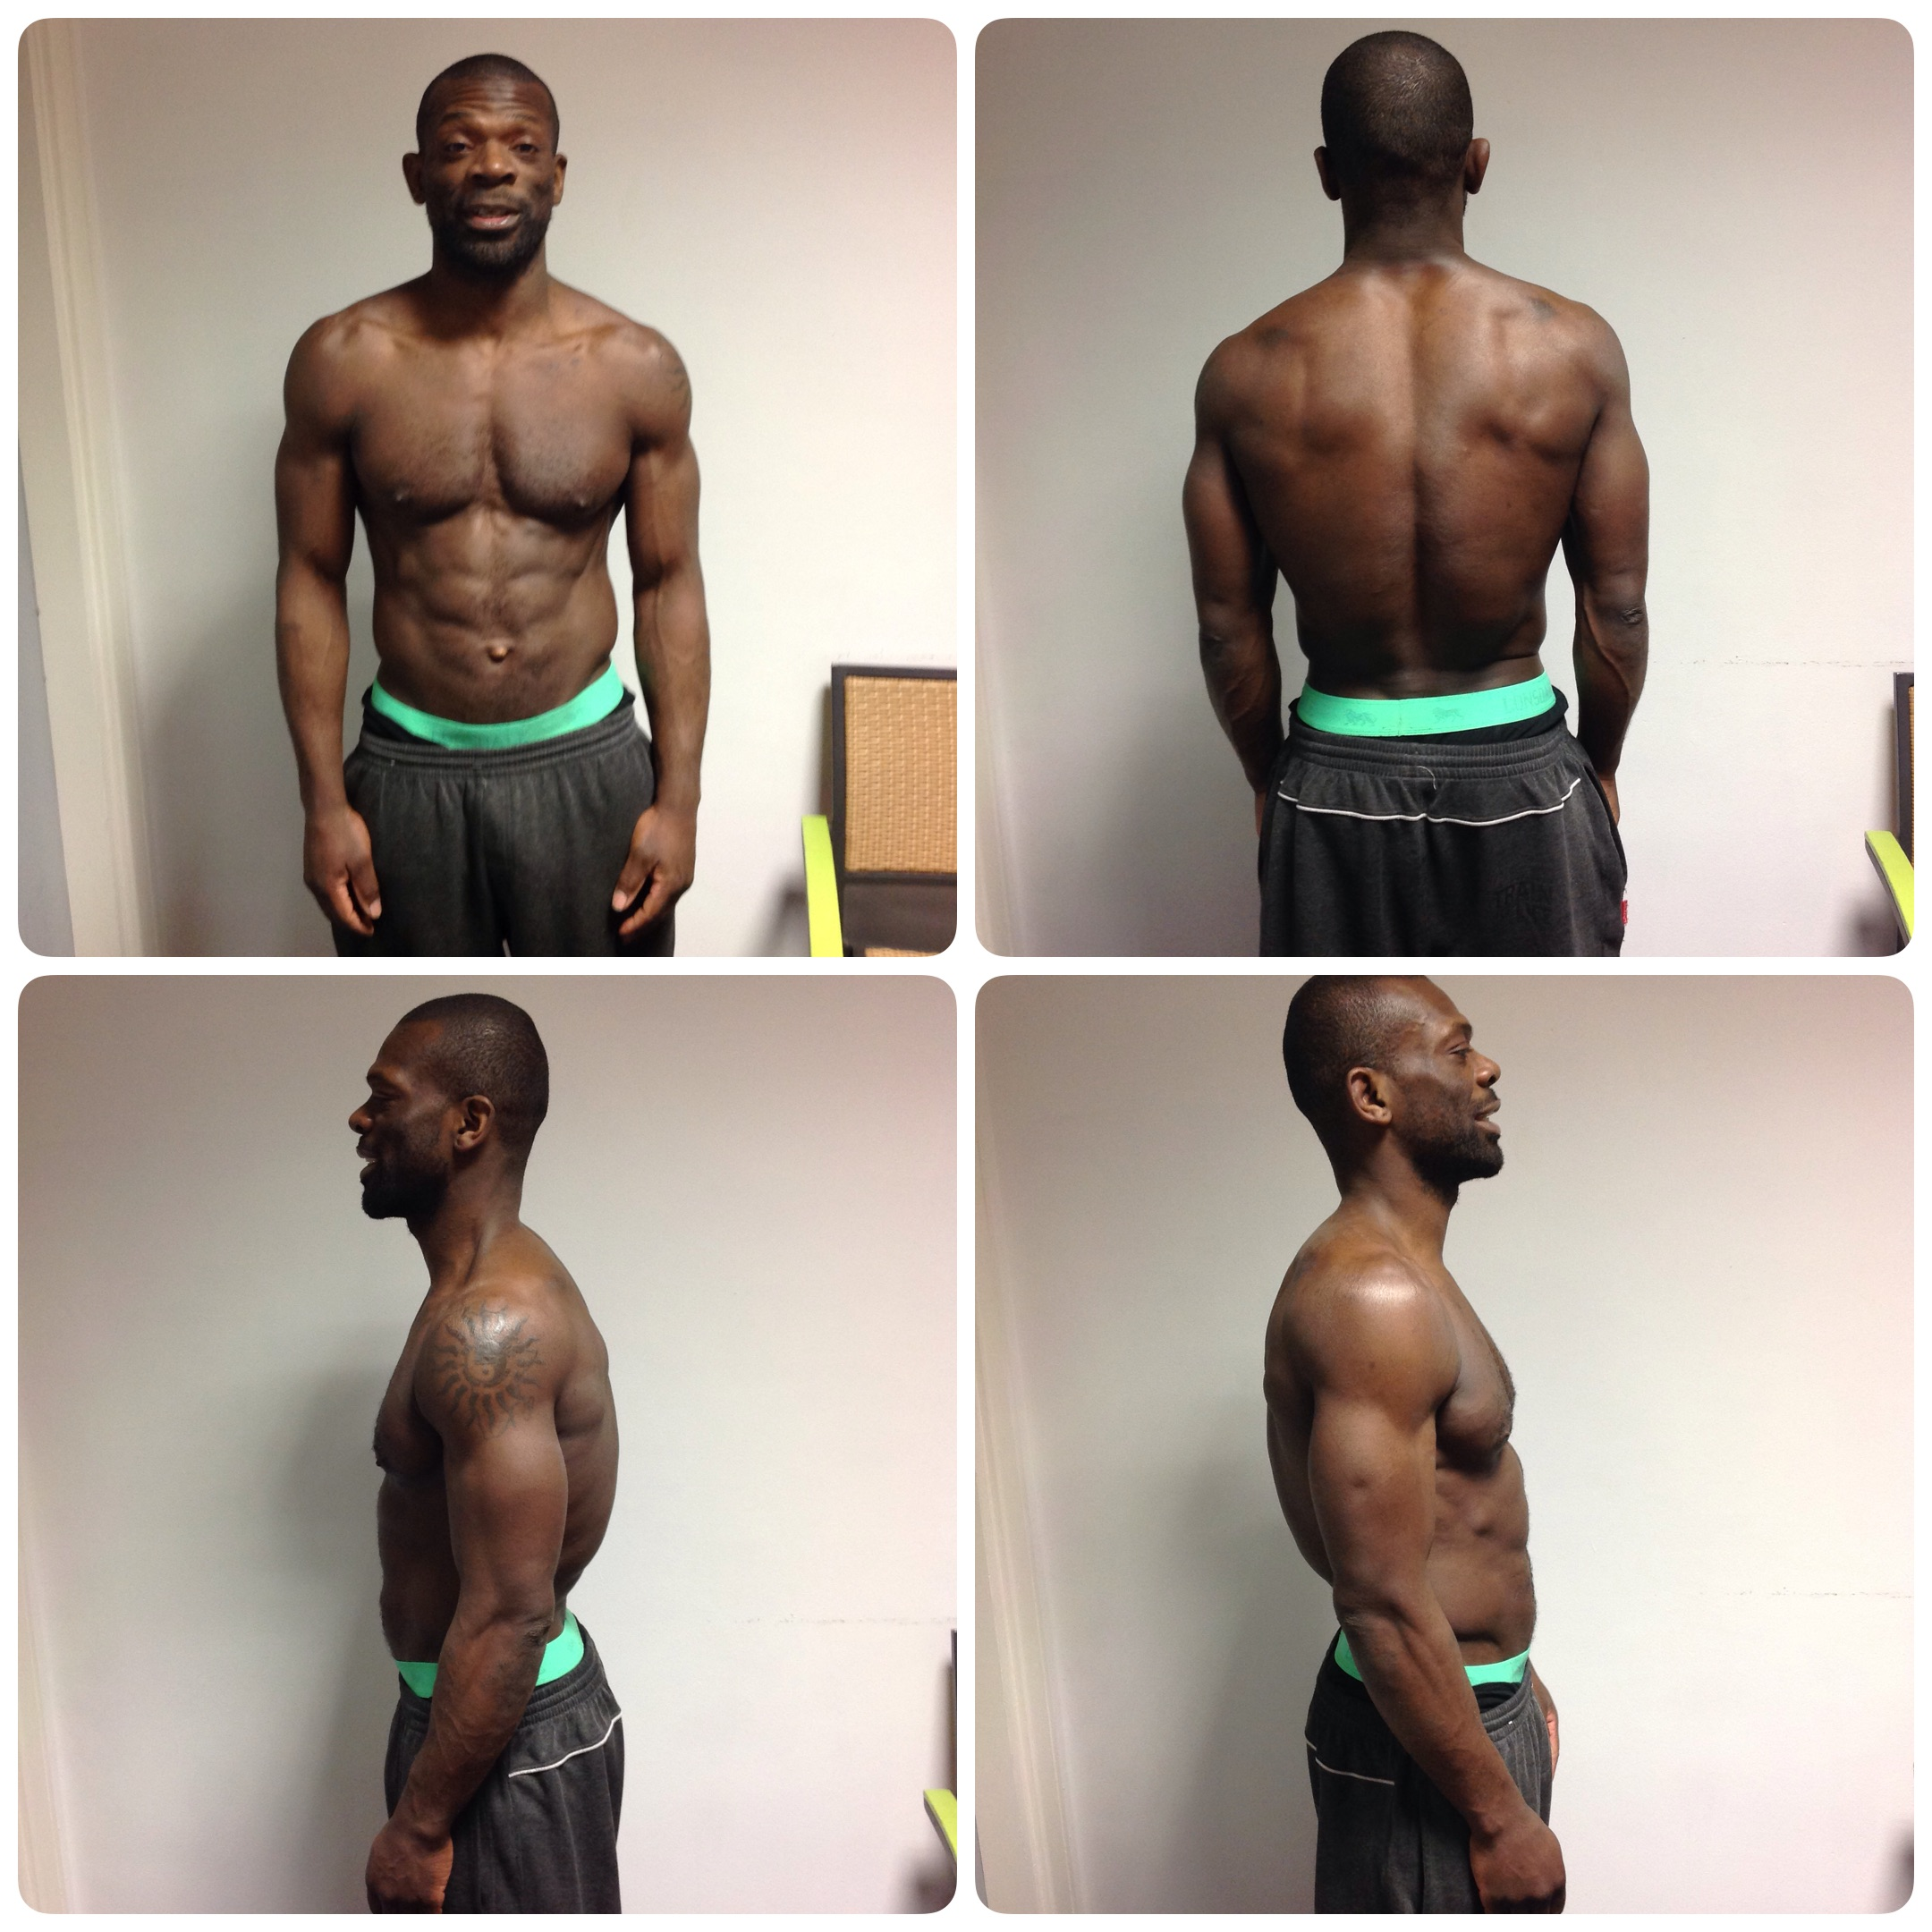 Wednesday 27th January, weighed at 86.5kg body fat measured 14%